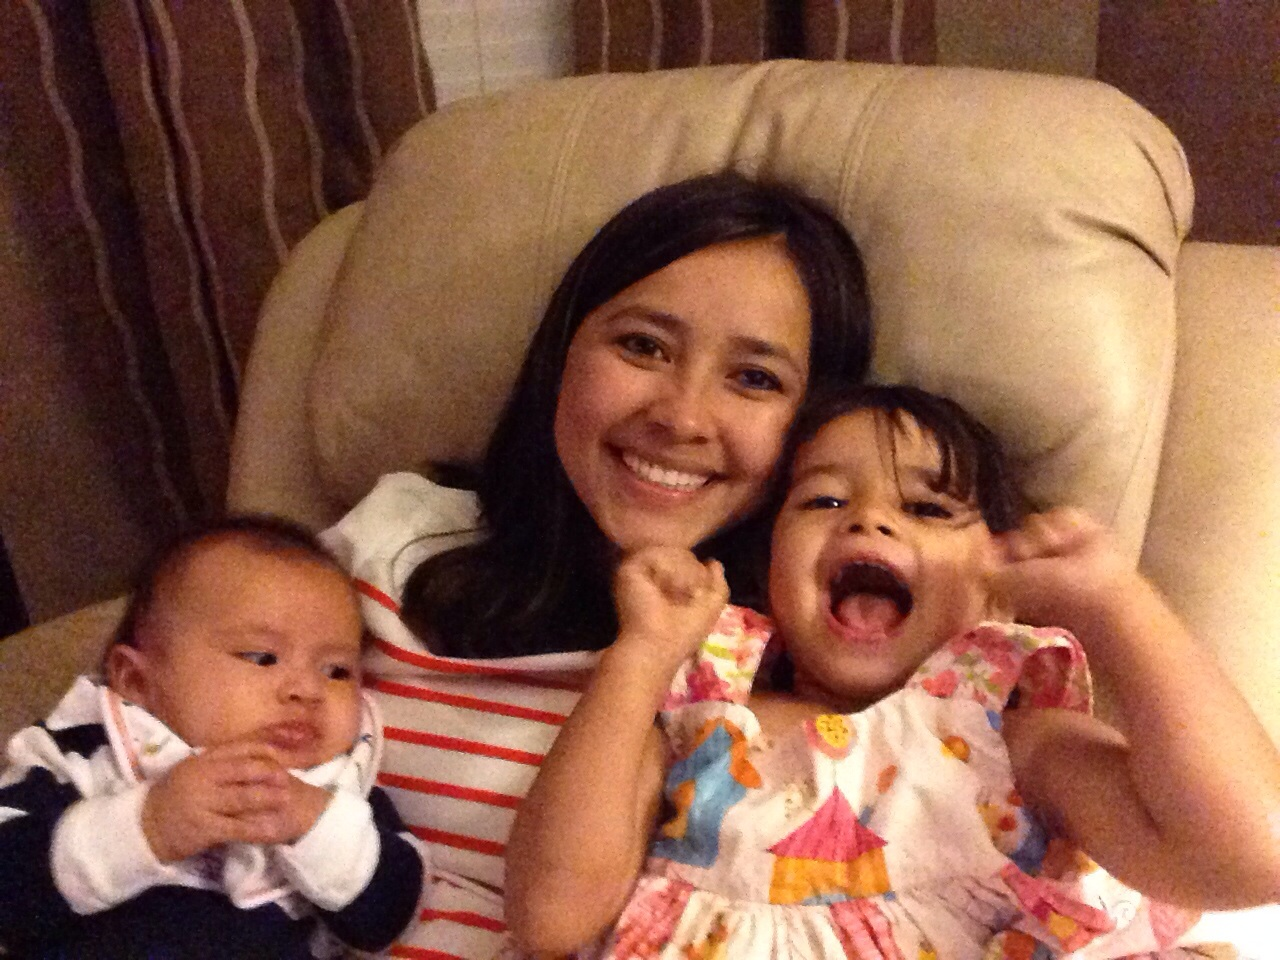 Even 1000 miles away in Tennessee Estella and her babies are part of us.